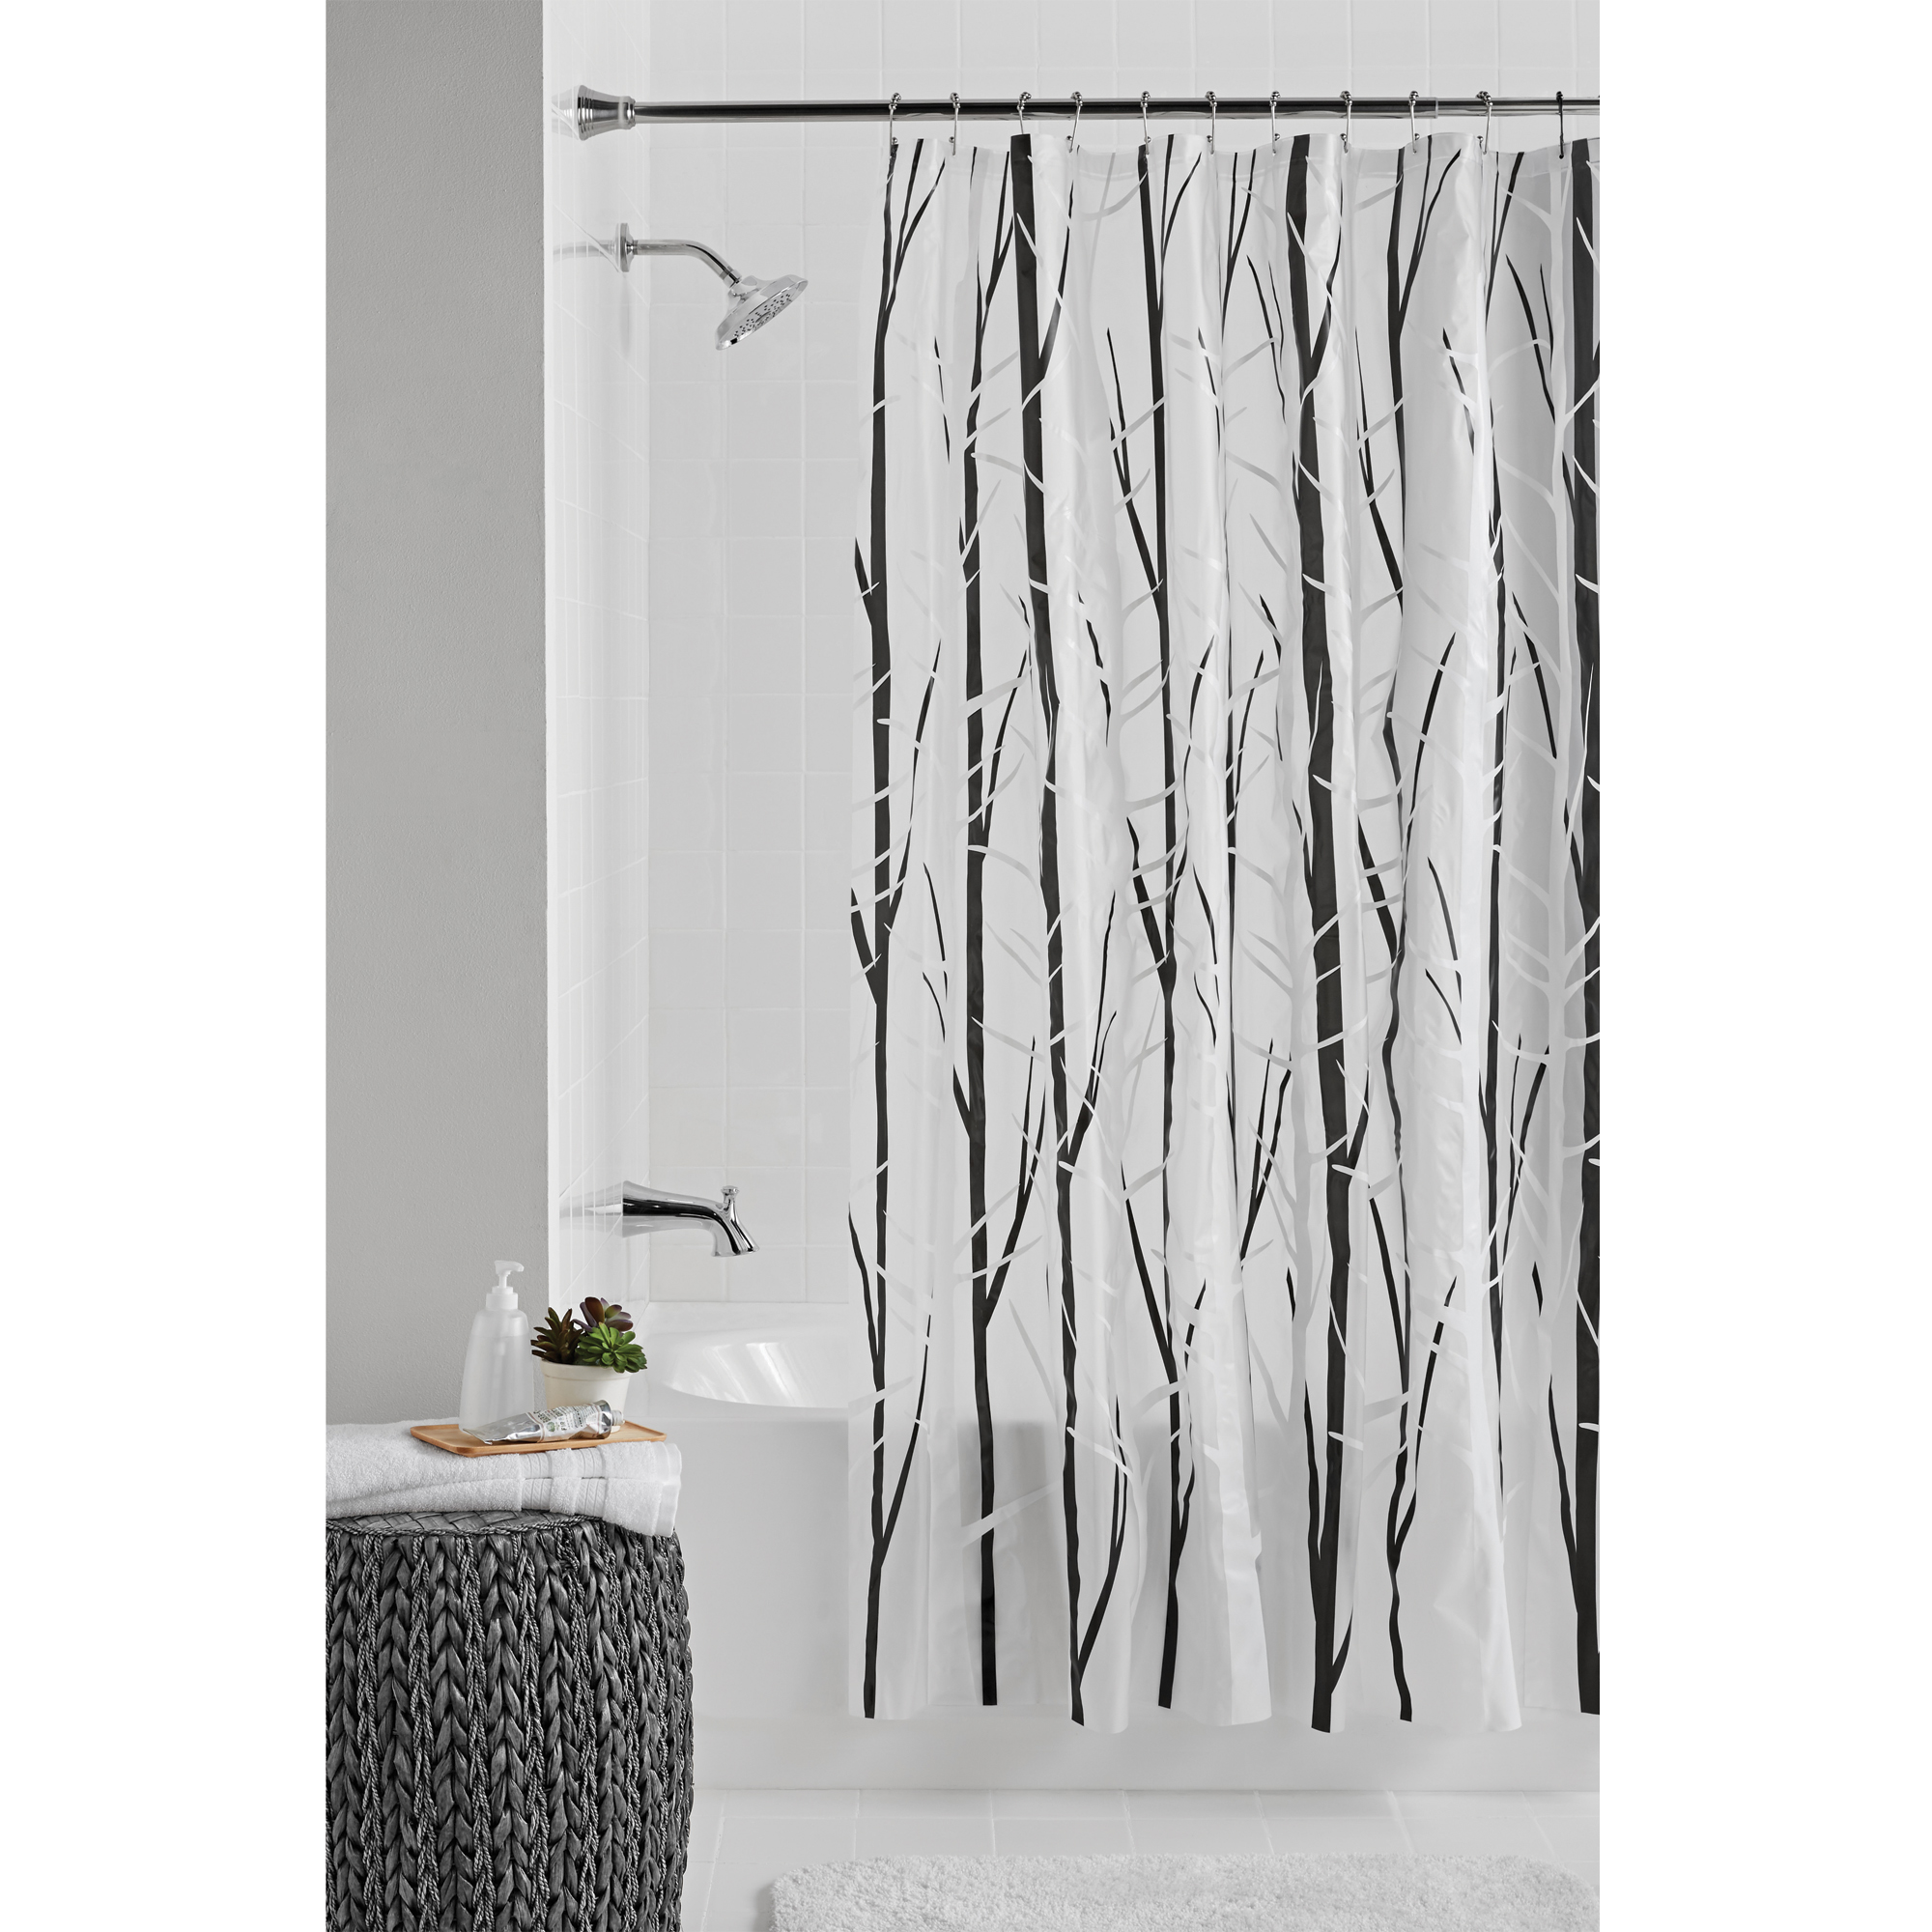 Mainstays Woodland Peva Shower Curtain or Liner, Black / White, 70 inch x 72 inch